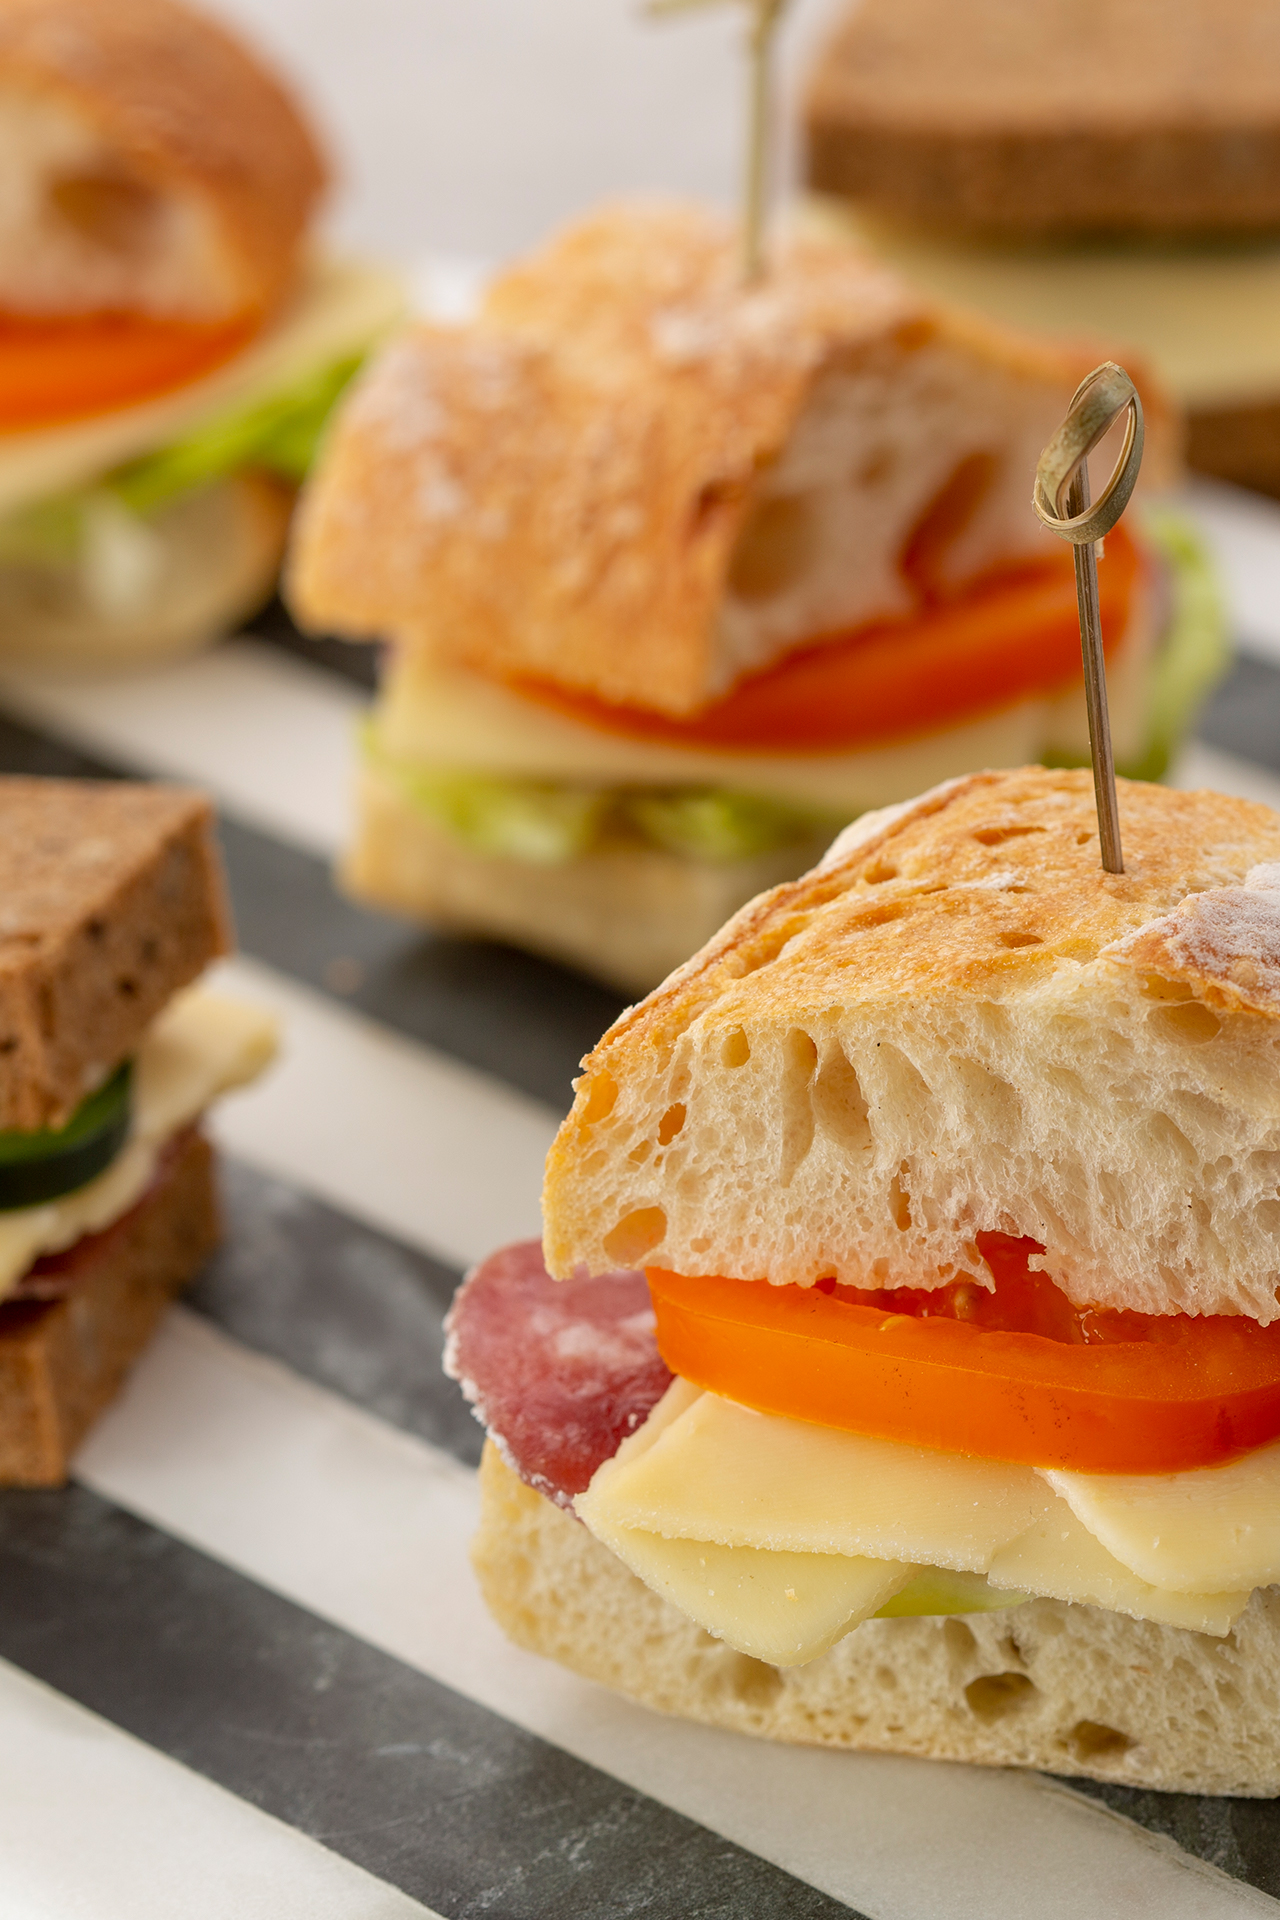 Mini sandwiches with Brie slices